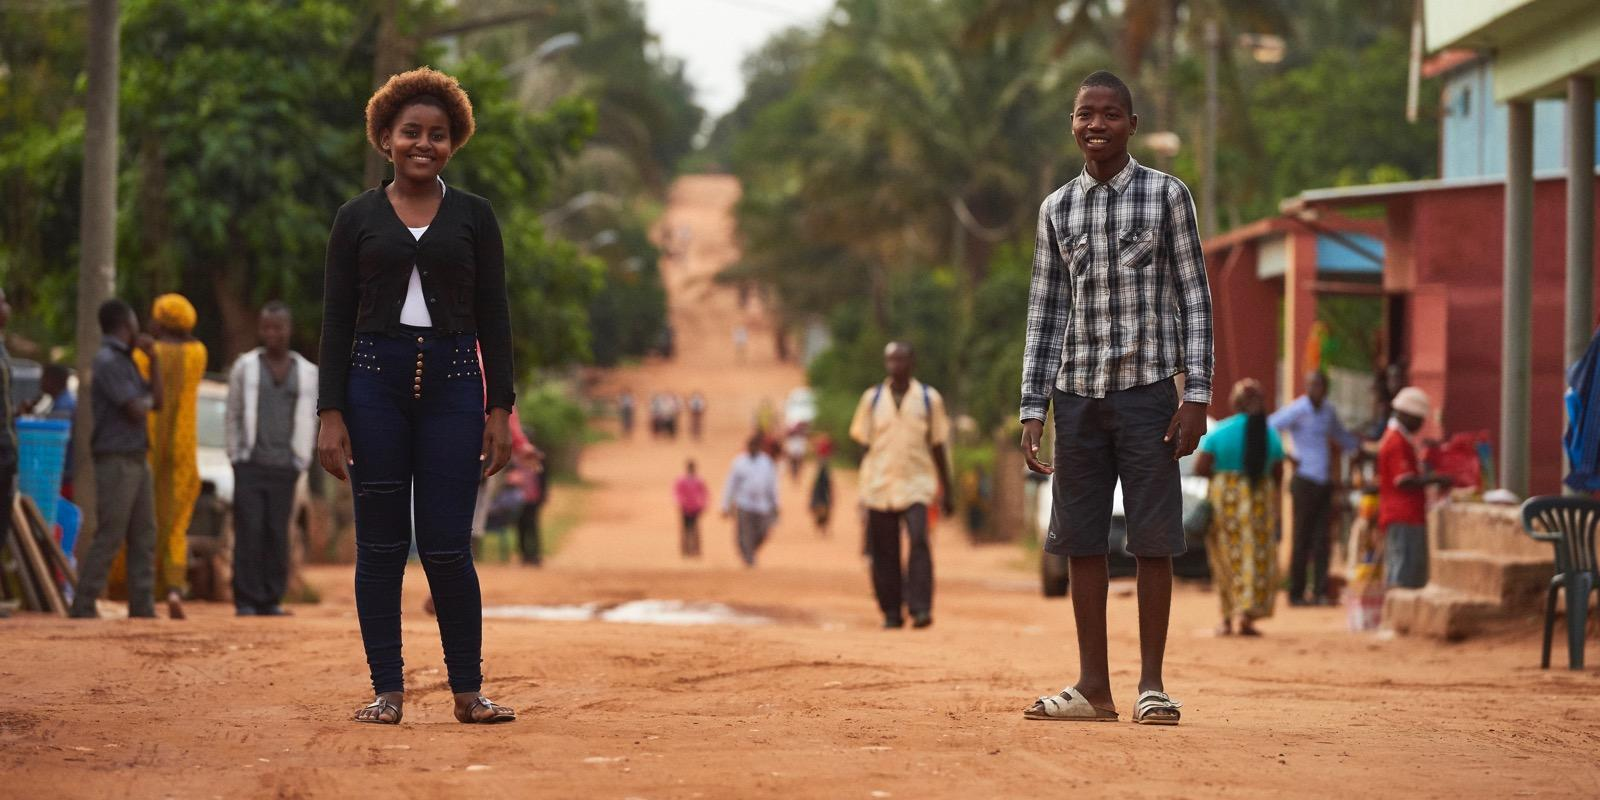 Girl and boy standing in dirt road